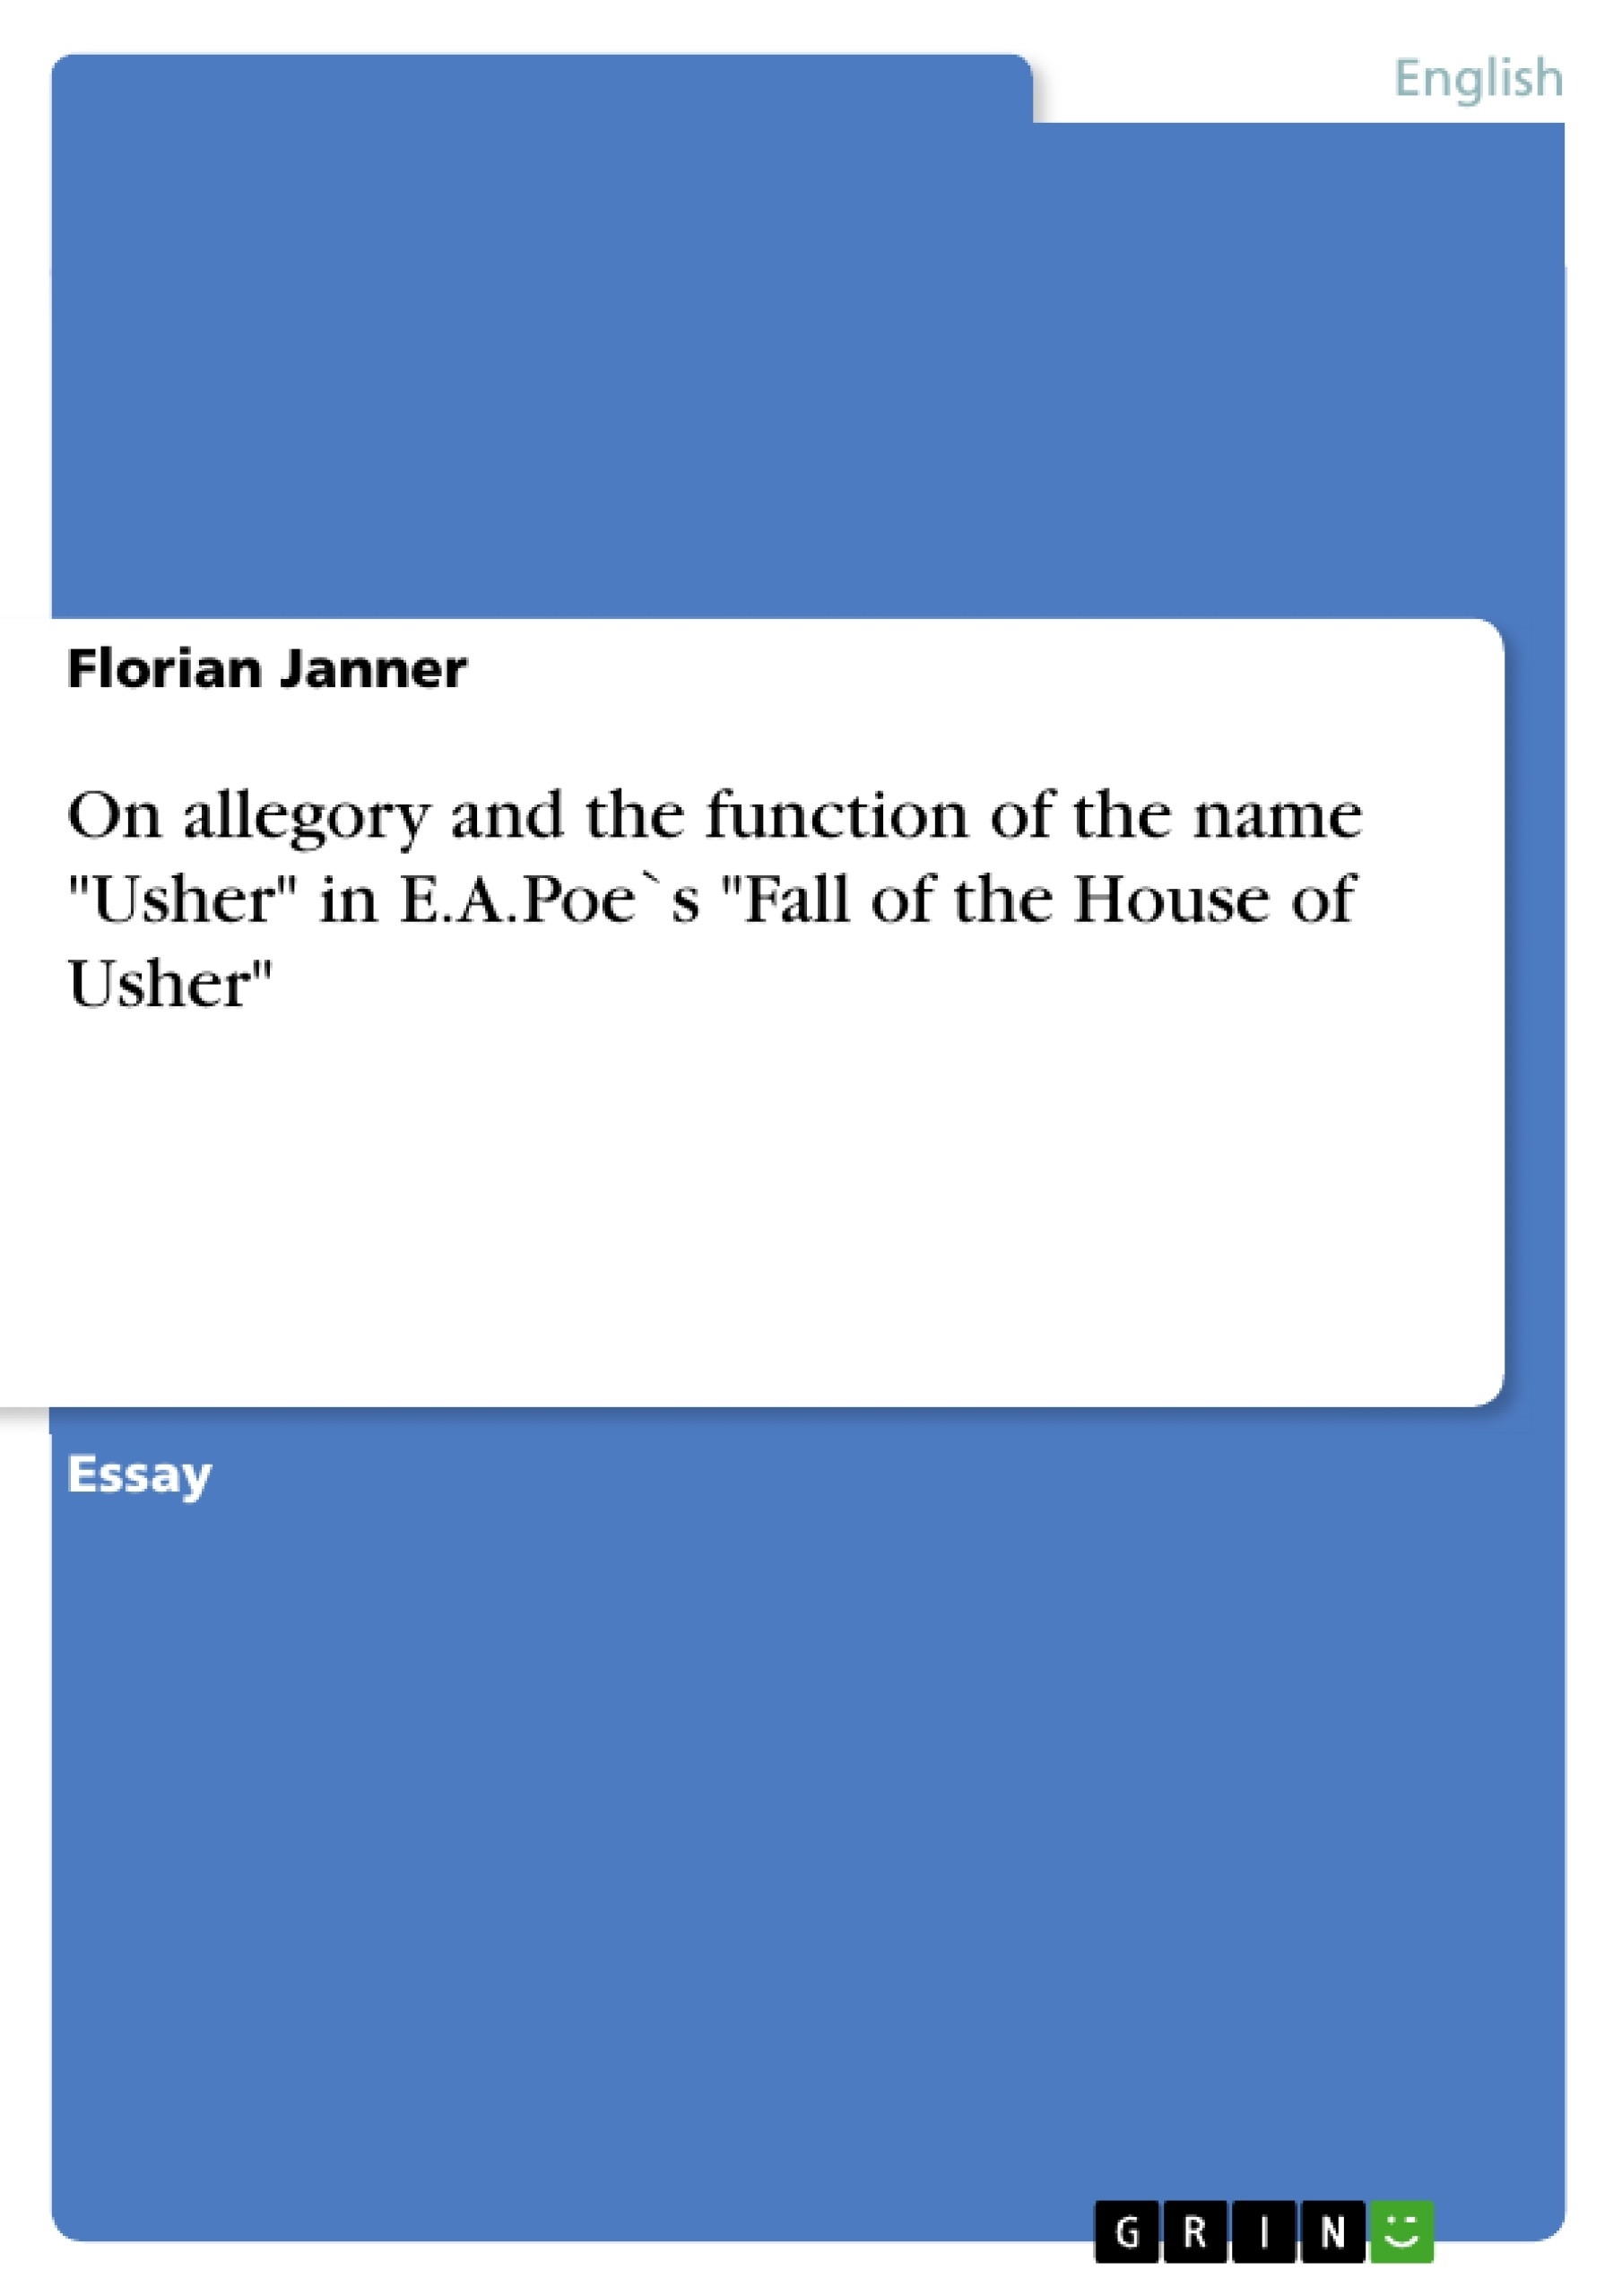 """Title: On allegory and the function of the name """"Usher"""" in E.A.Poe`s """"Fall of the House of Usher"""""""